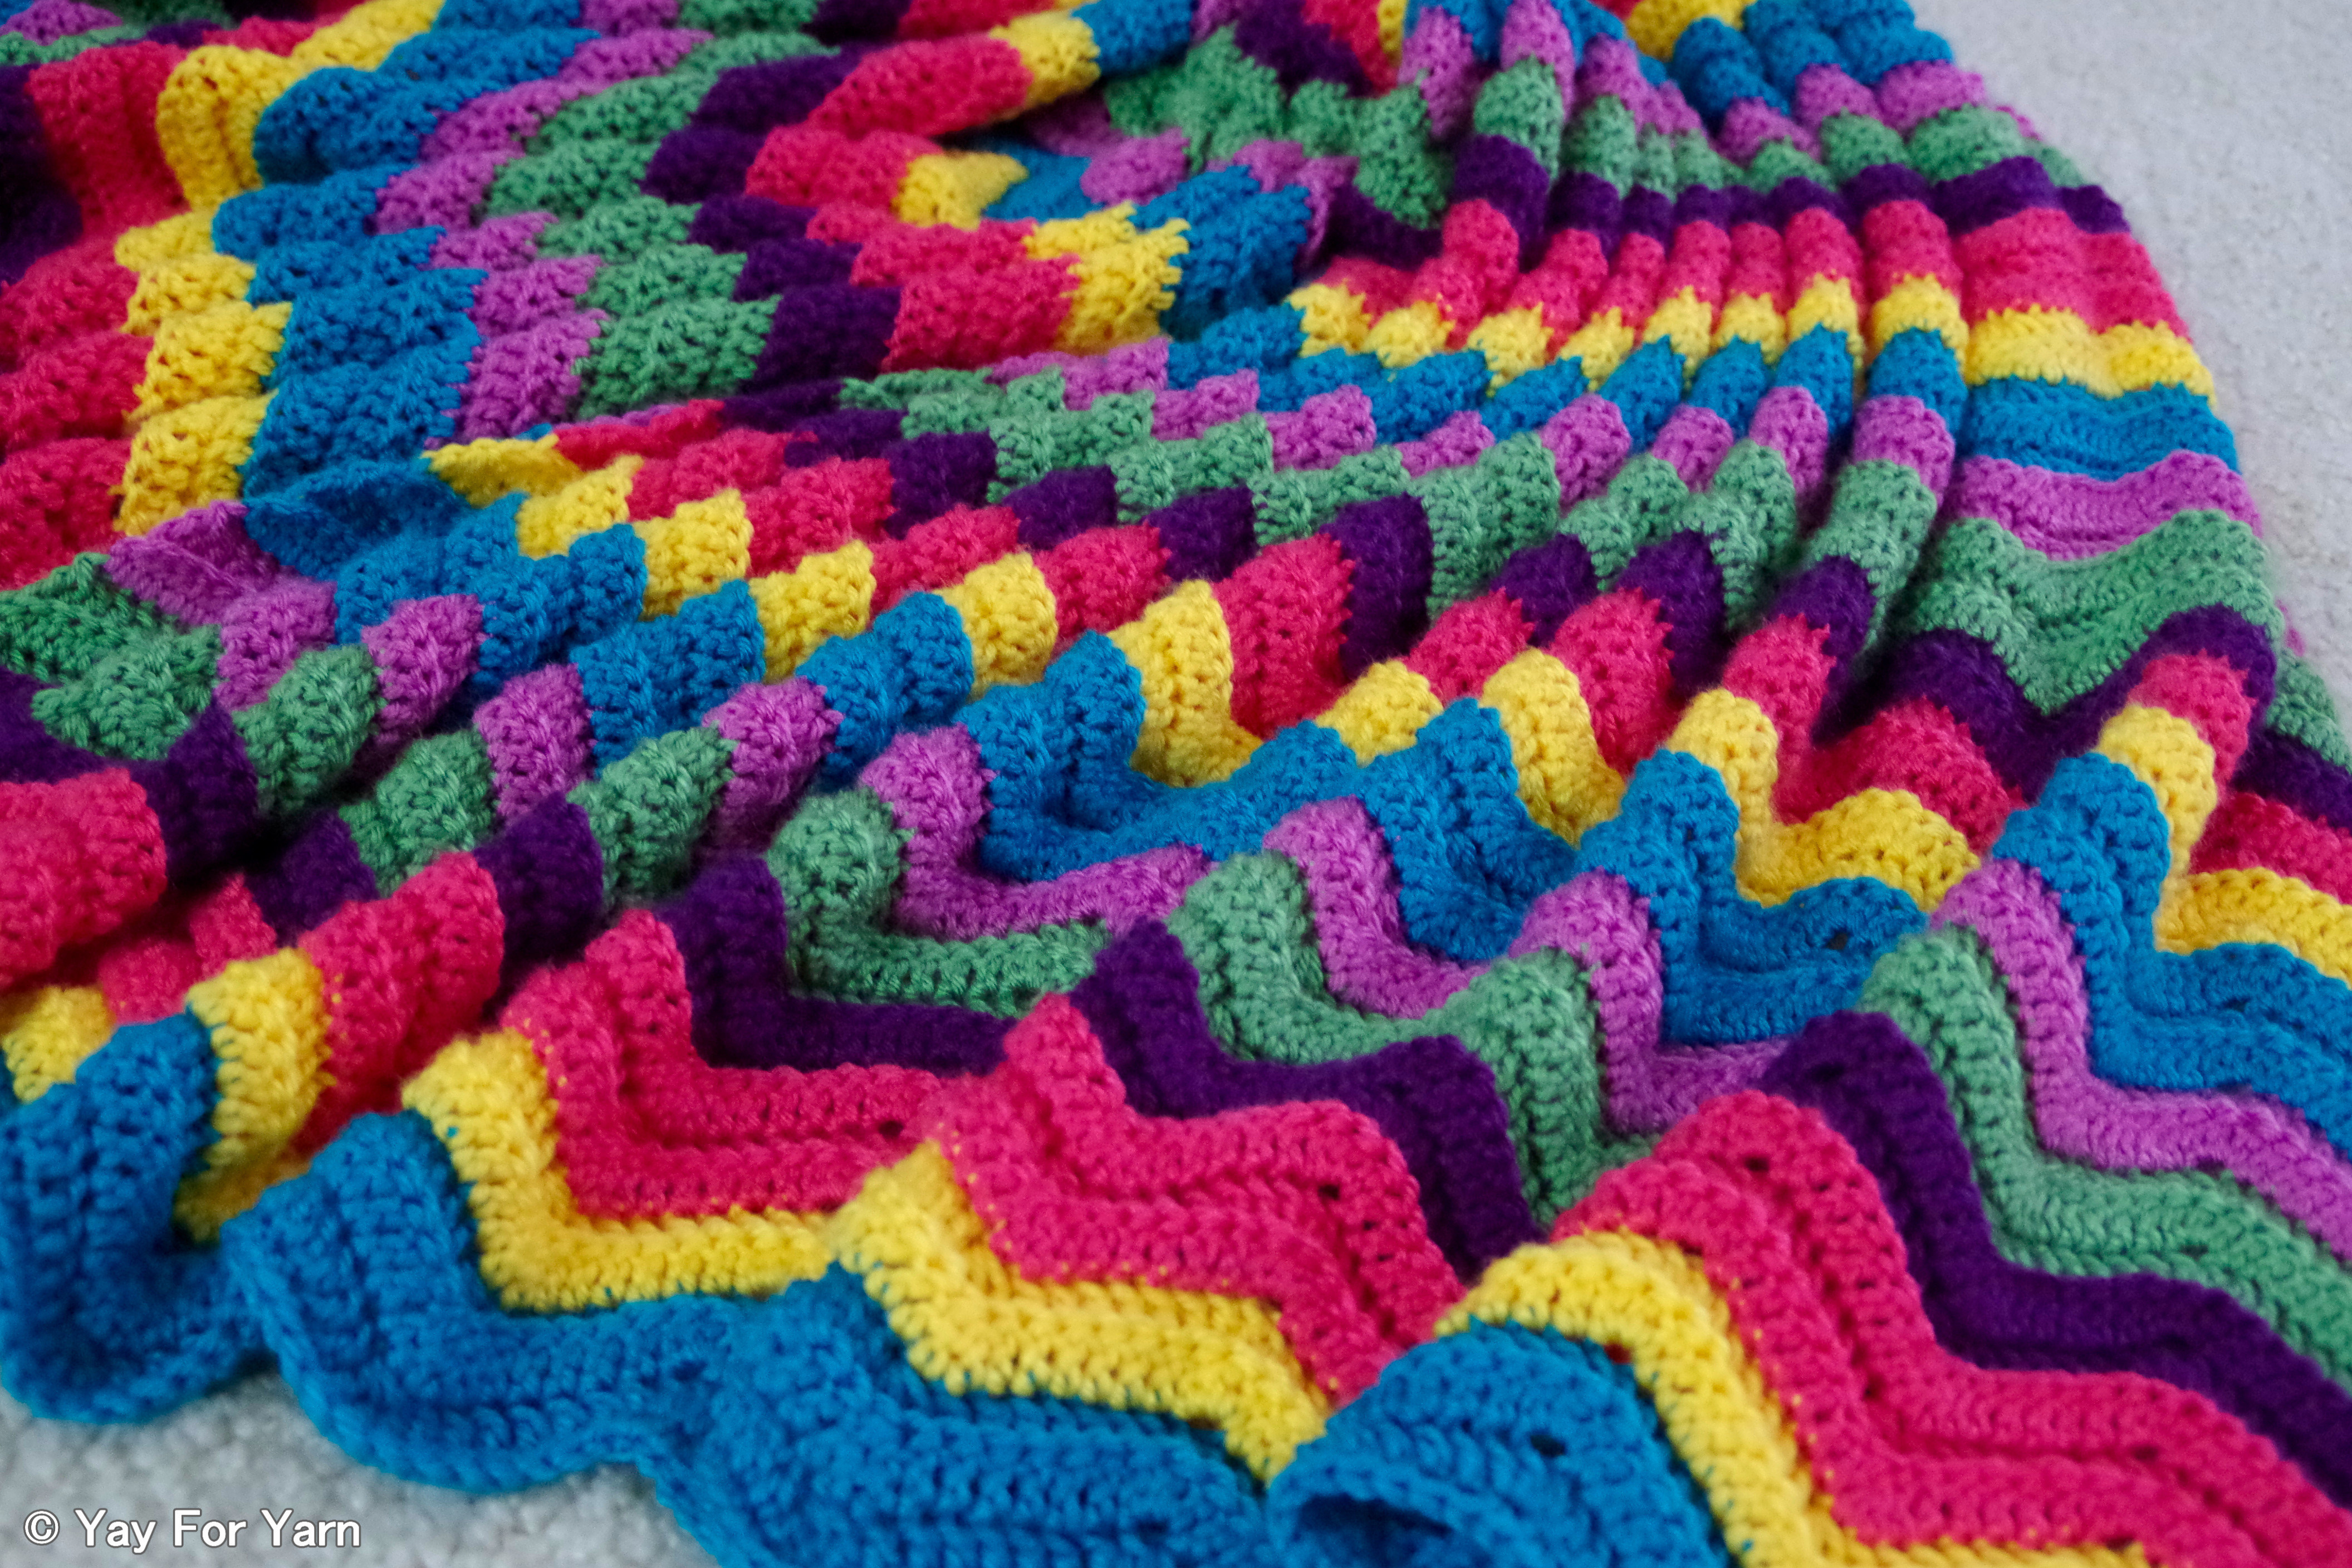 Rainbow Baby Blanket Crochet Pattern Unique Finished April Afghan – 12 Afghans In 12 Months Challenge Of Rainbow Baby Blanket Crochet Pattern Awesome 25 Best Ideas About Rainbow Crochet Blankets On Pinterest